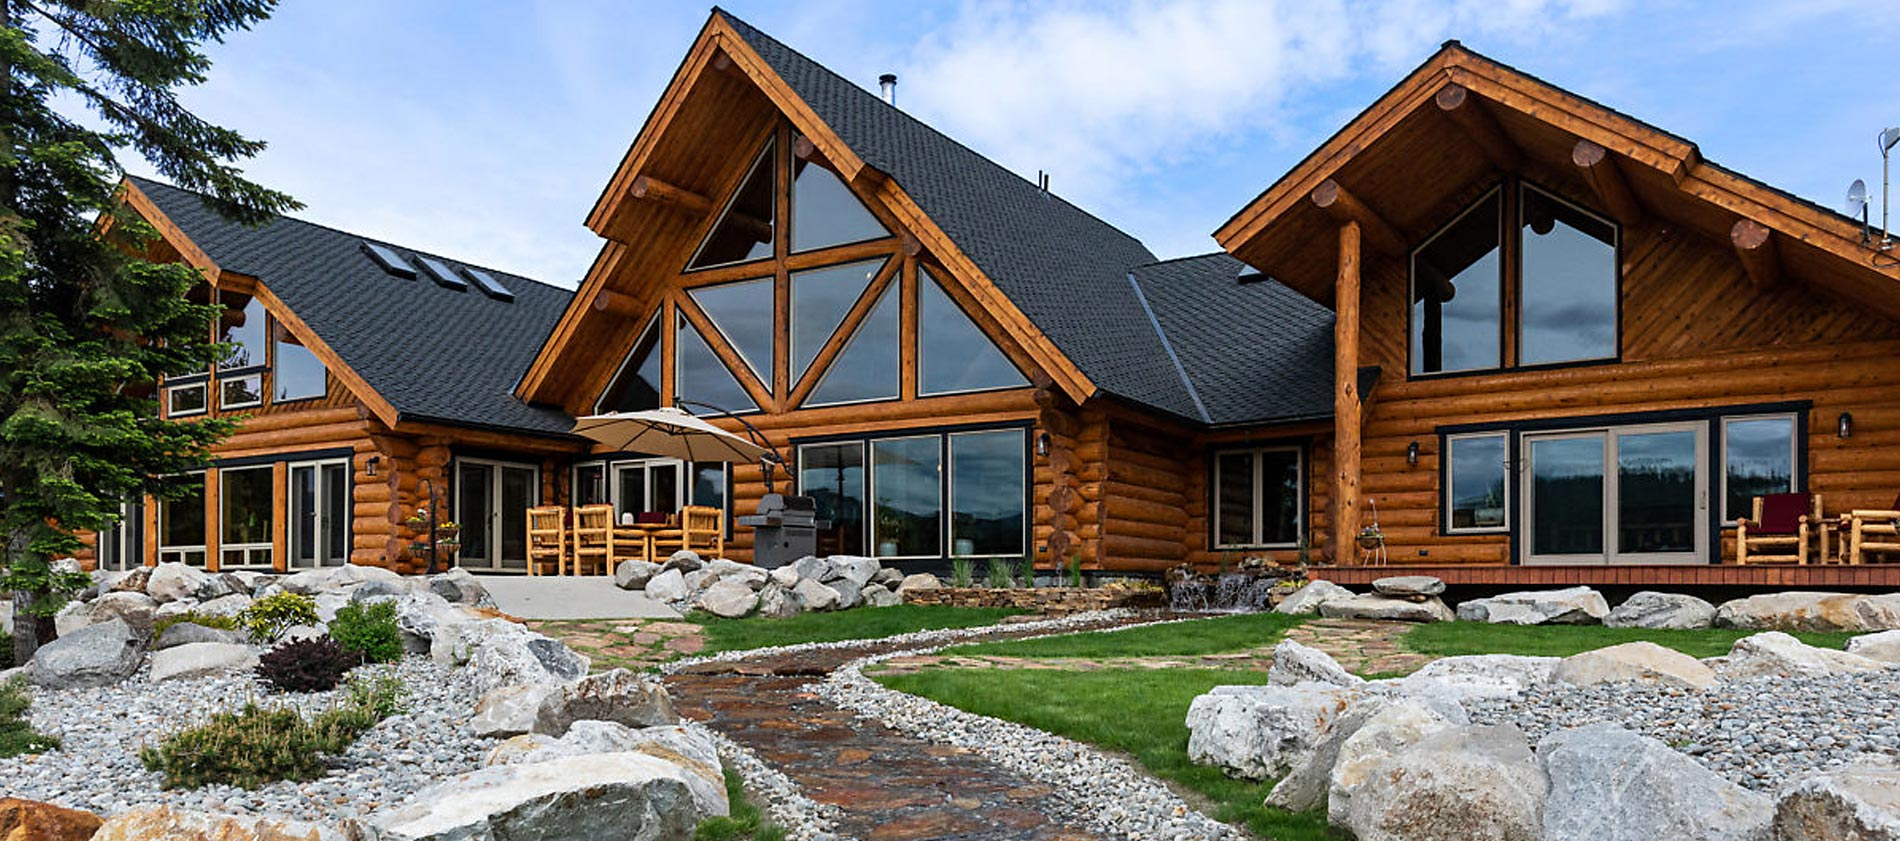 private waterfront estate with a pond at the end of the road to your magnificent custom log home. Caribou Creek